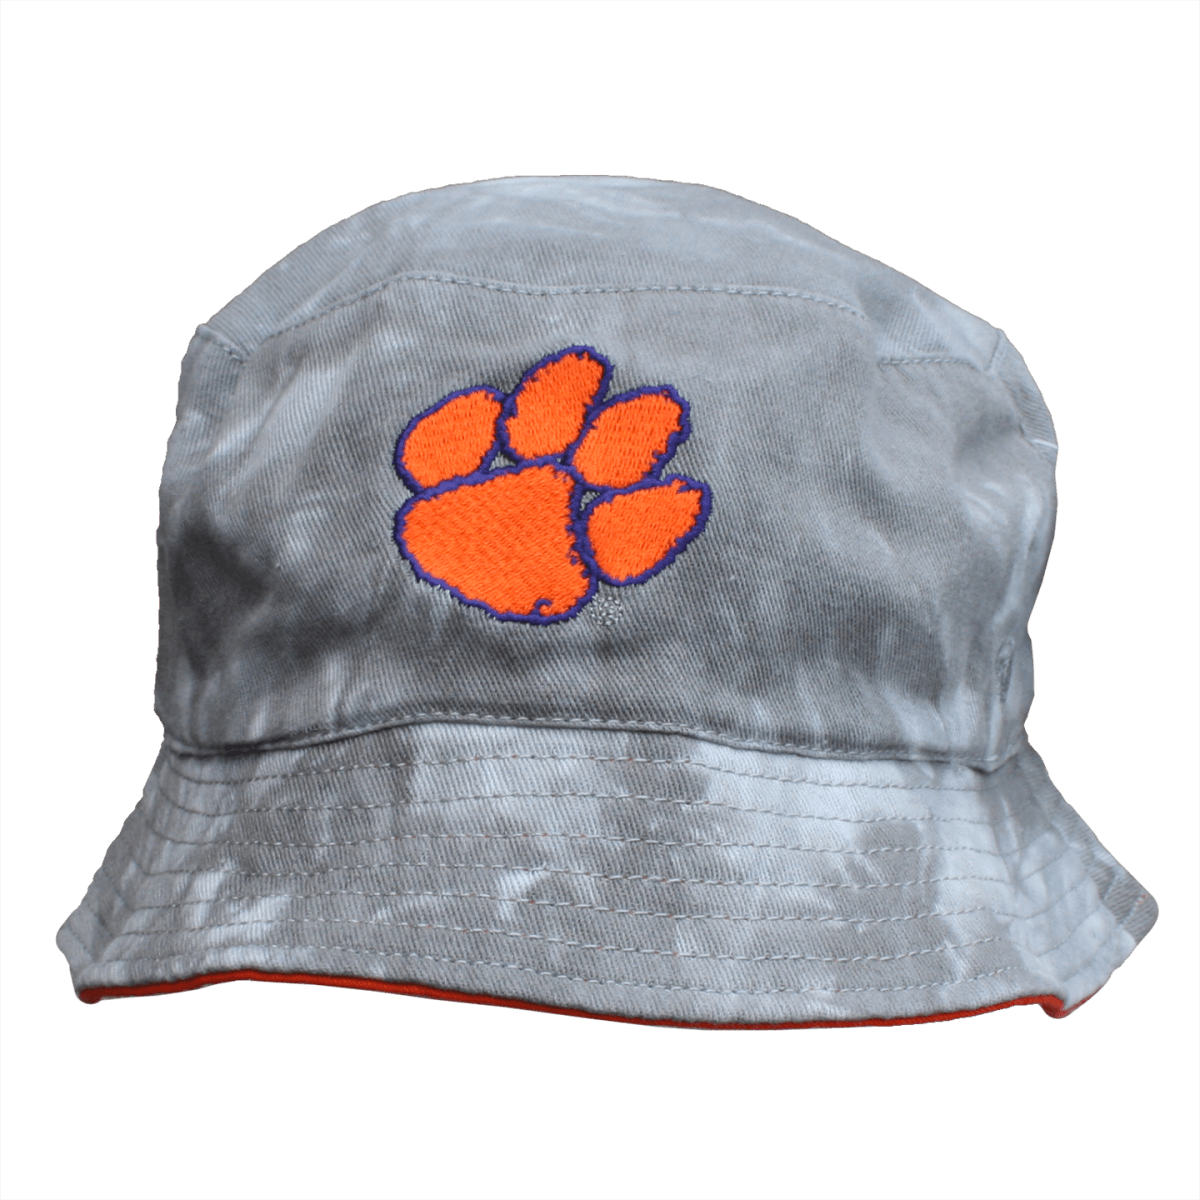 Clemson Tigers Sandy Tie-Dye Bucket Hat - Mr. Knickerbocker